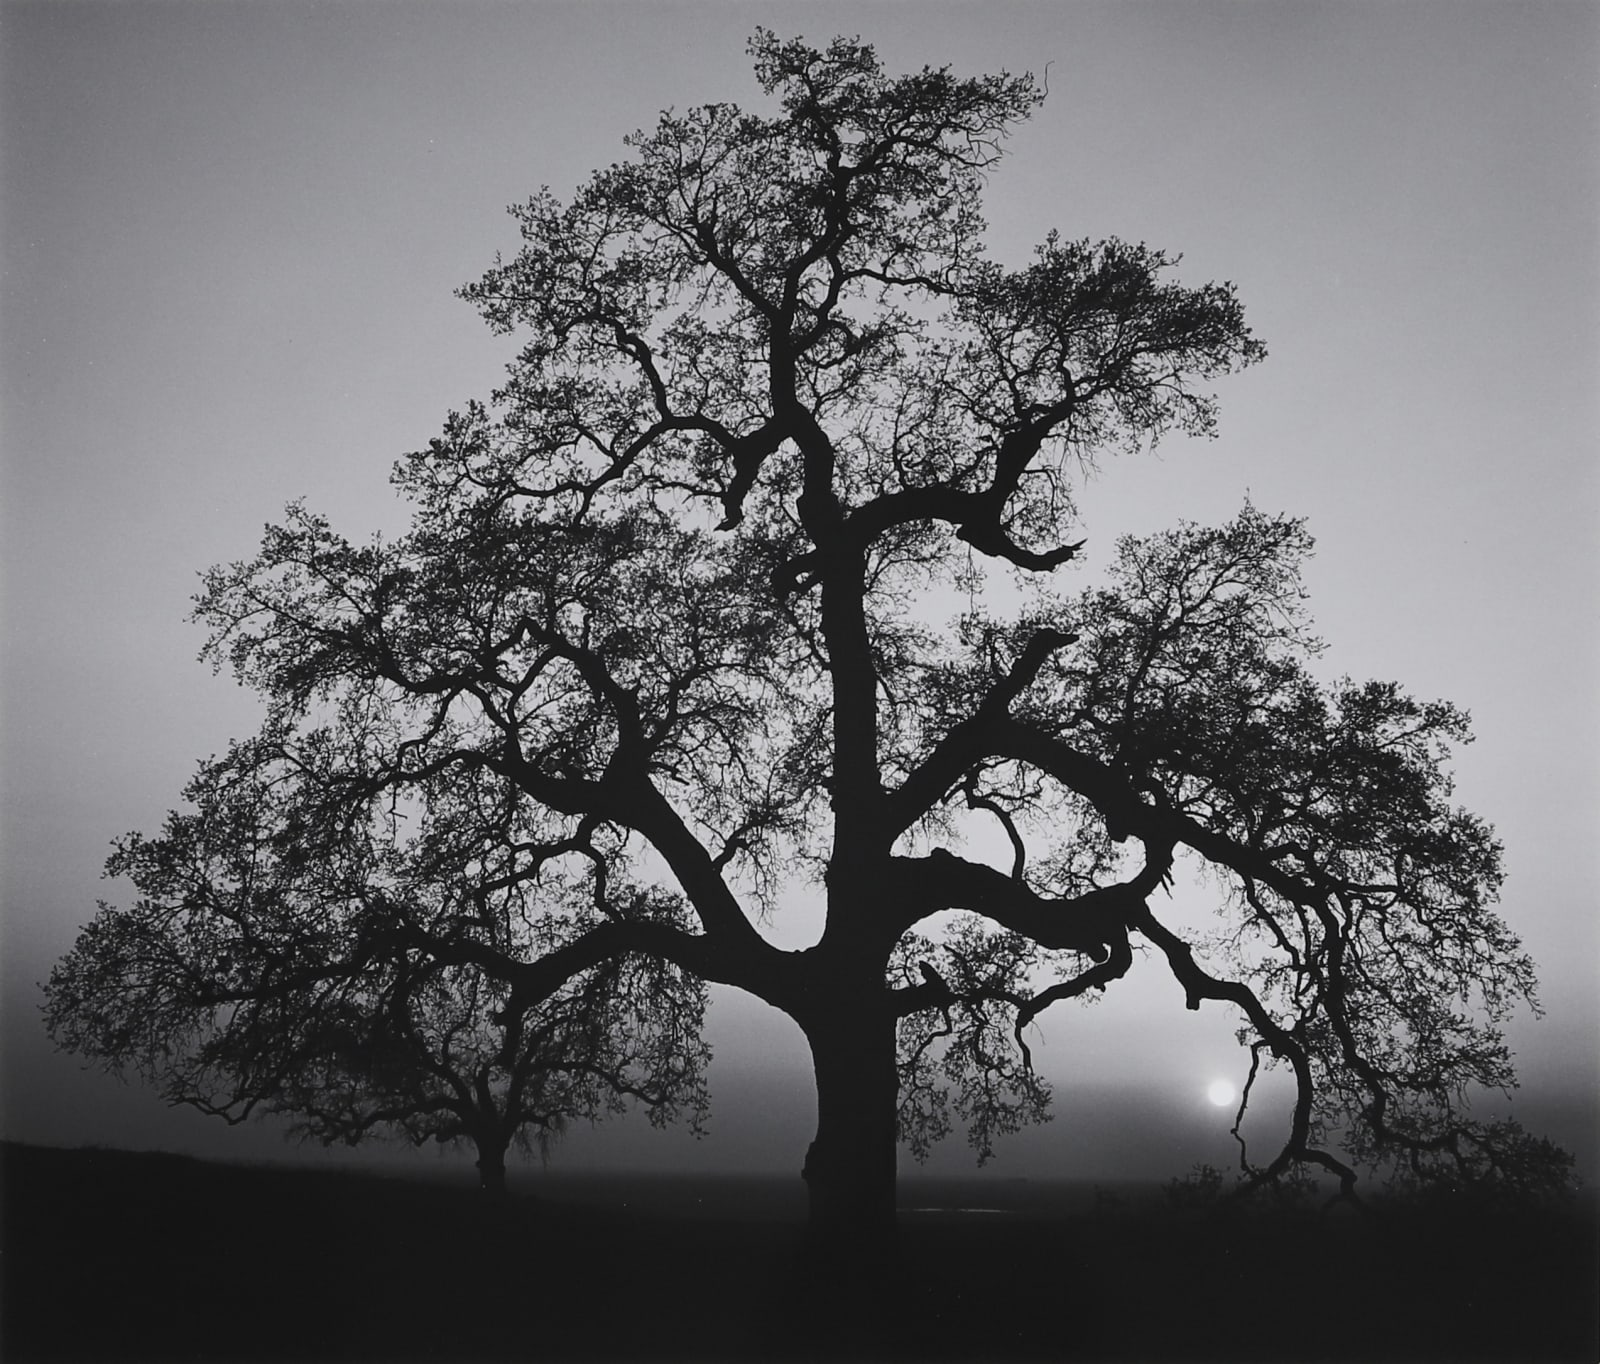 Ansel Adams, Oak Tree, Sunset City, 1962